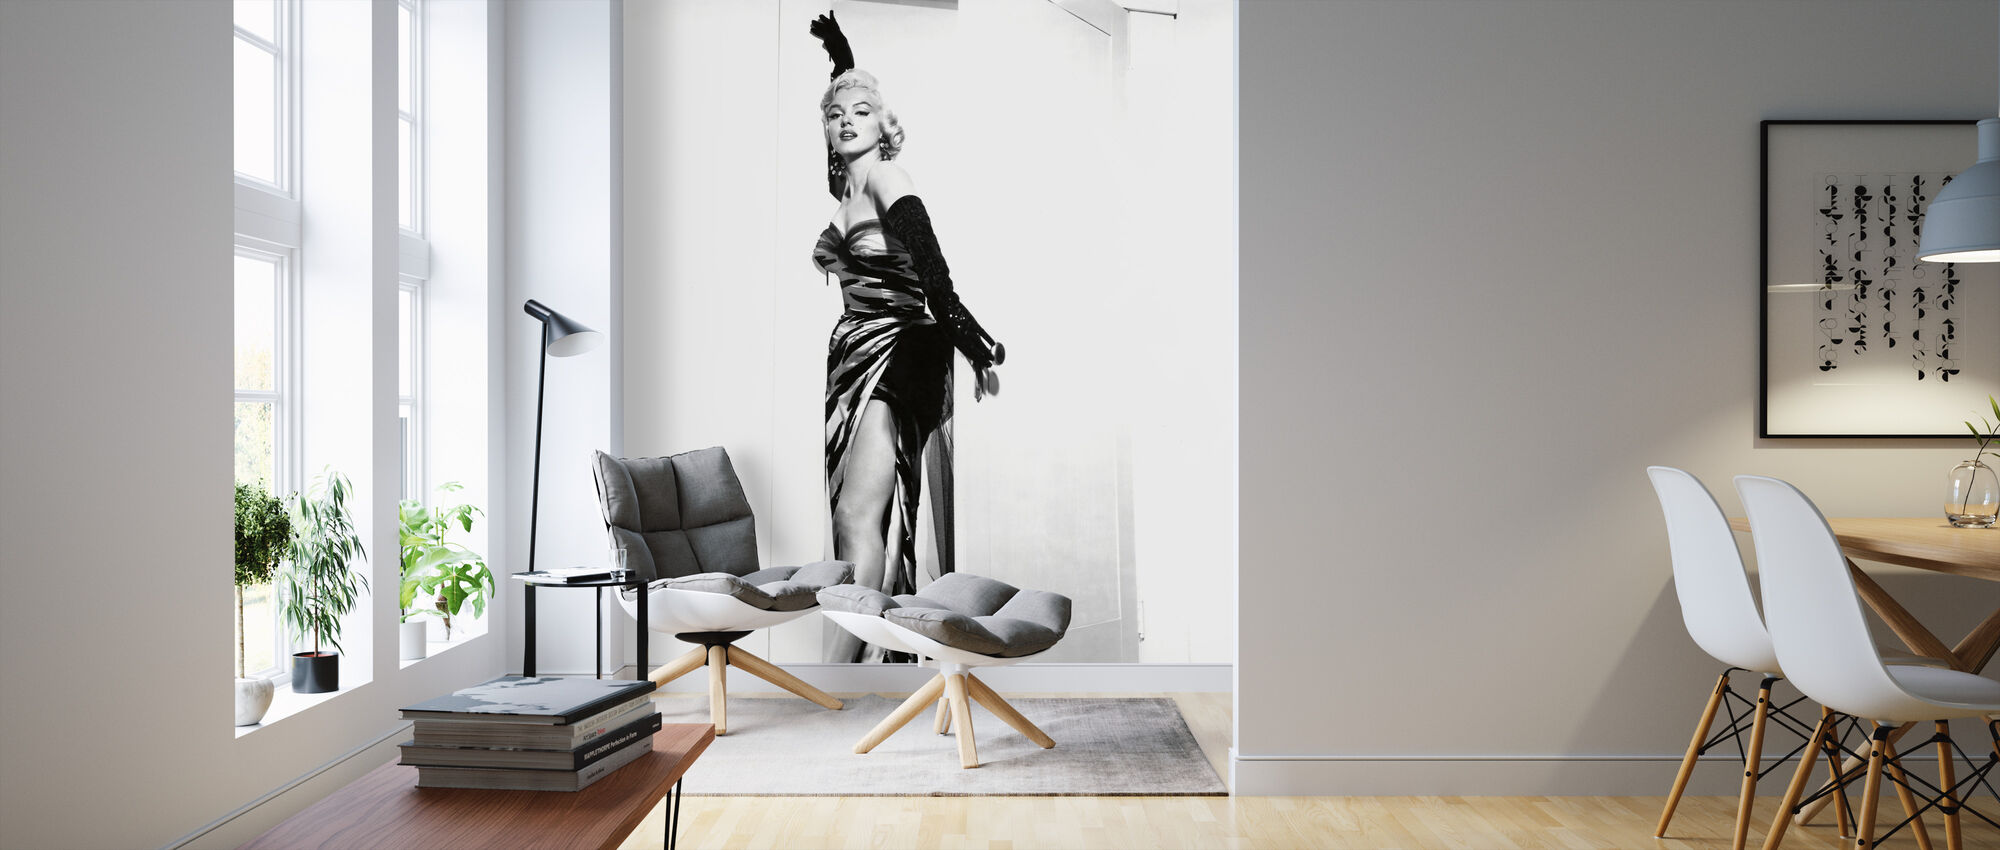 Marilyn Monroe in the Seven Year Itch - Wallpaper - Living Room